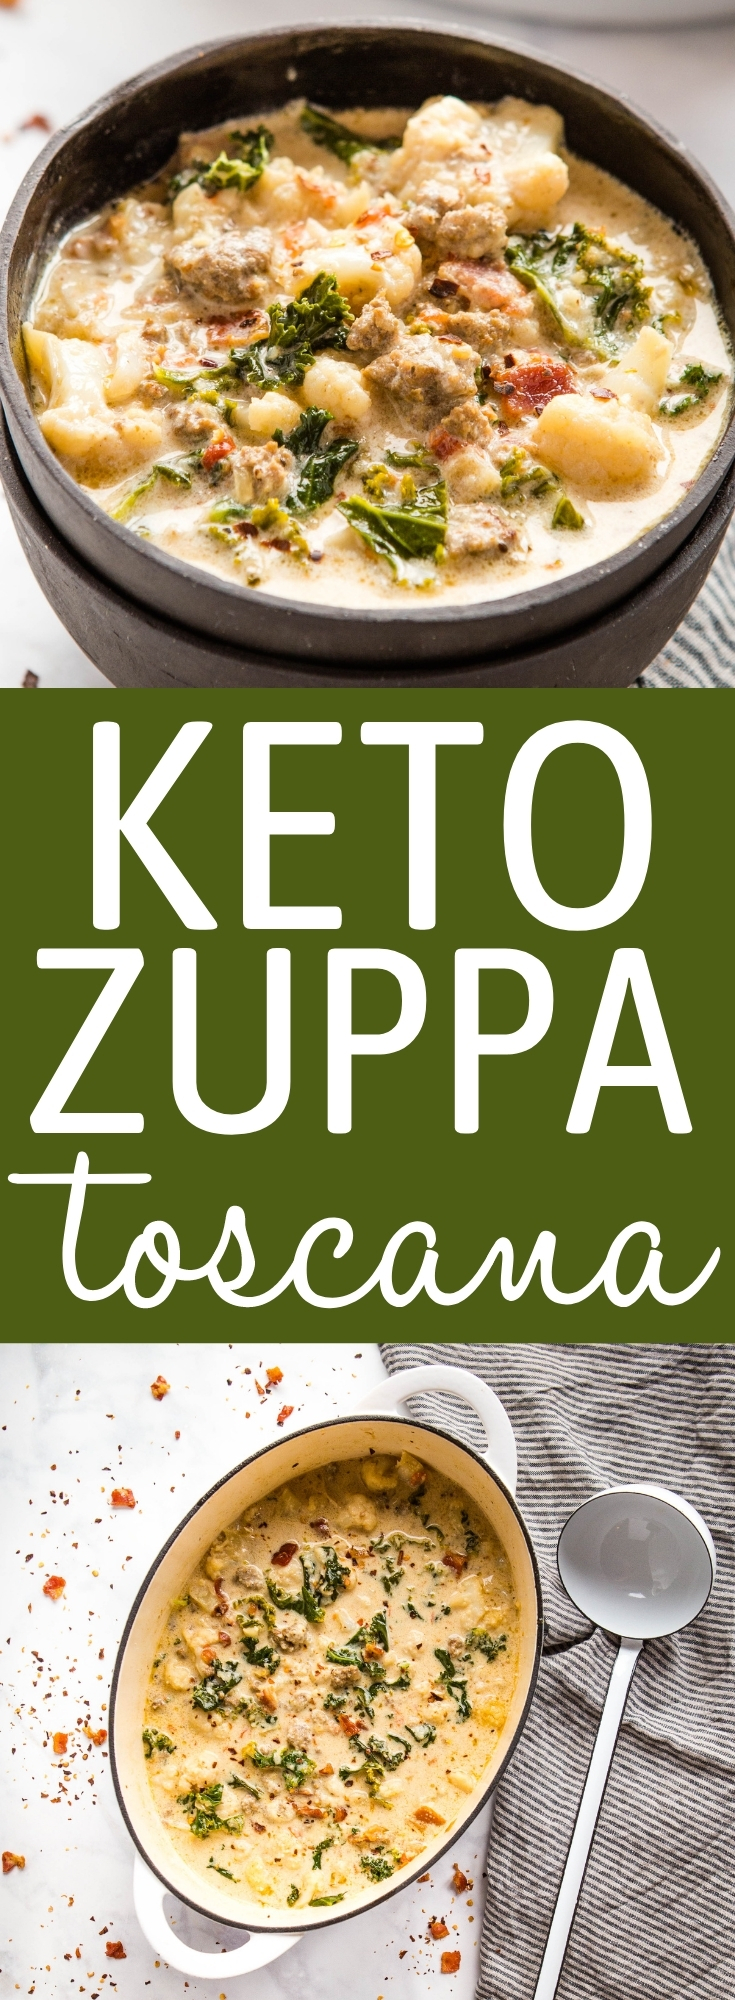 This Keto Zuppa Toscana is ultra creamy and packed with traditional flavours! A delicious Olive Garden restaurant copycat recipe made low carb, with only 7 grams of net carbs! Recipe from thebusybaker.ca! #keto #copycat #olivegarden #lowcarb #zuppatoscana #restaurantcopycat #easytomake #homemade #soup #Italian via @busybakerblog